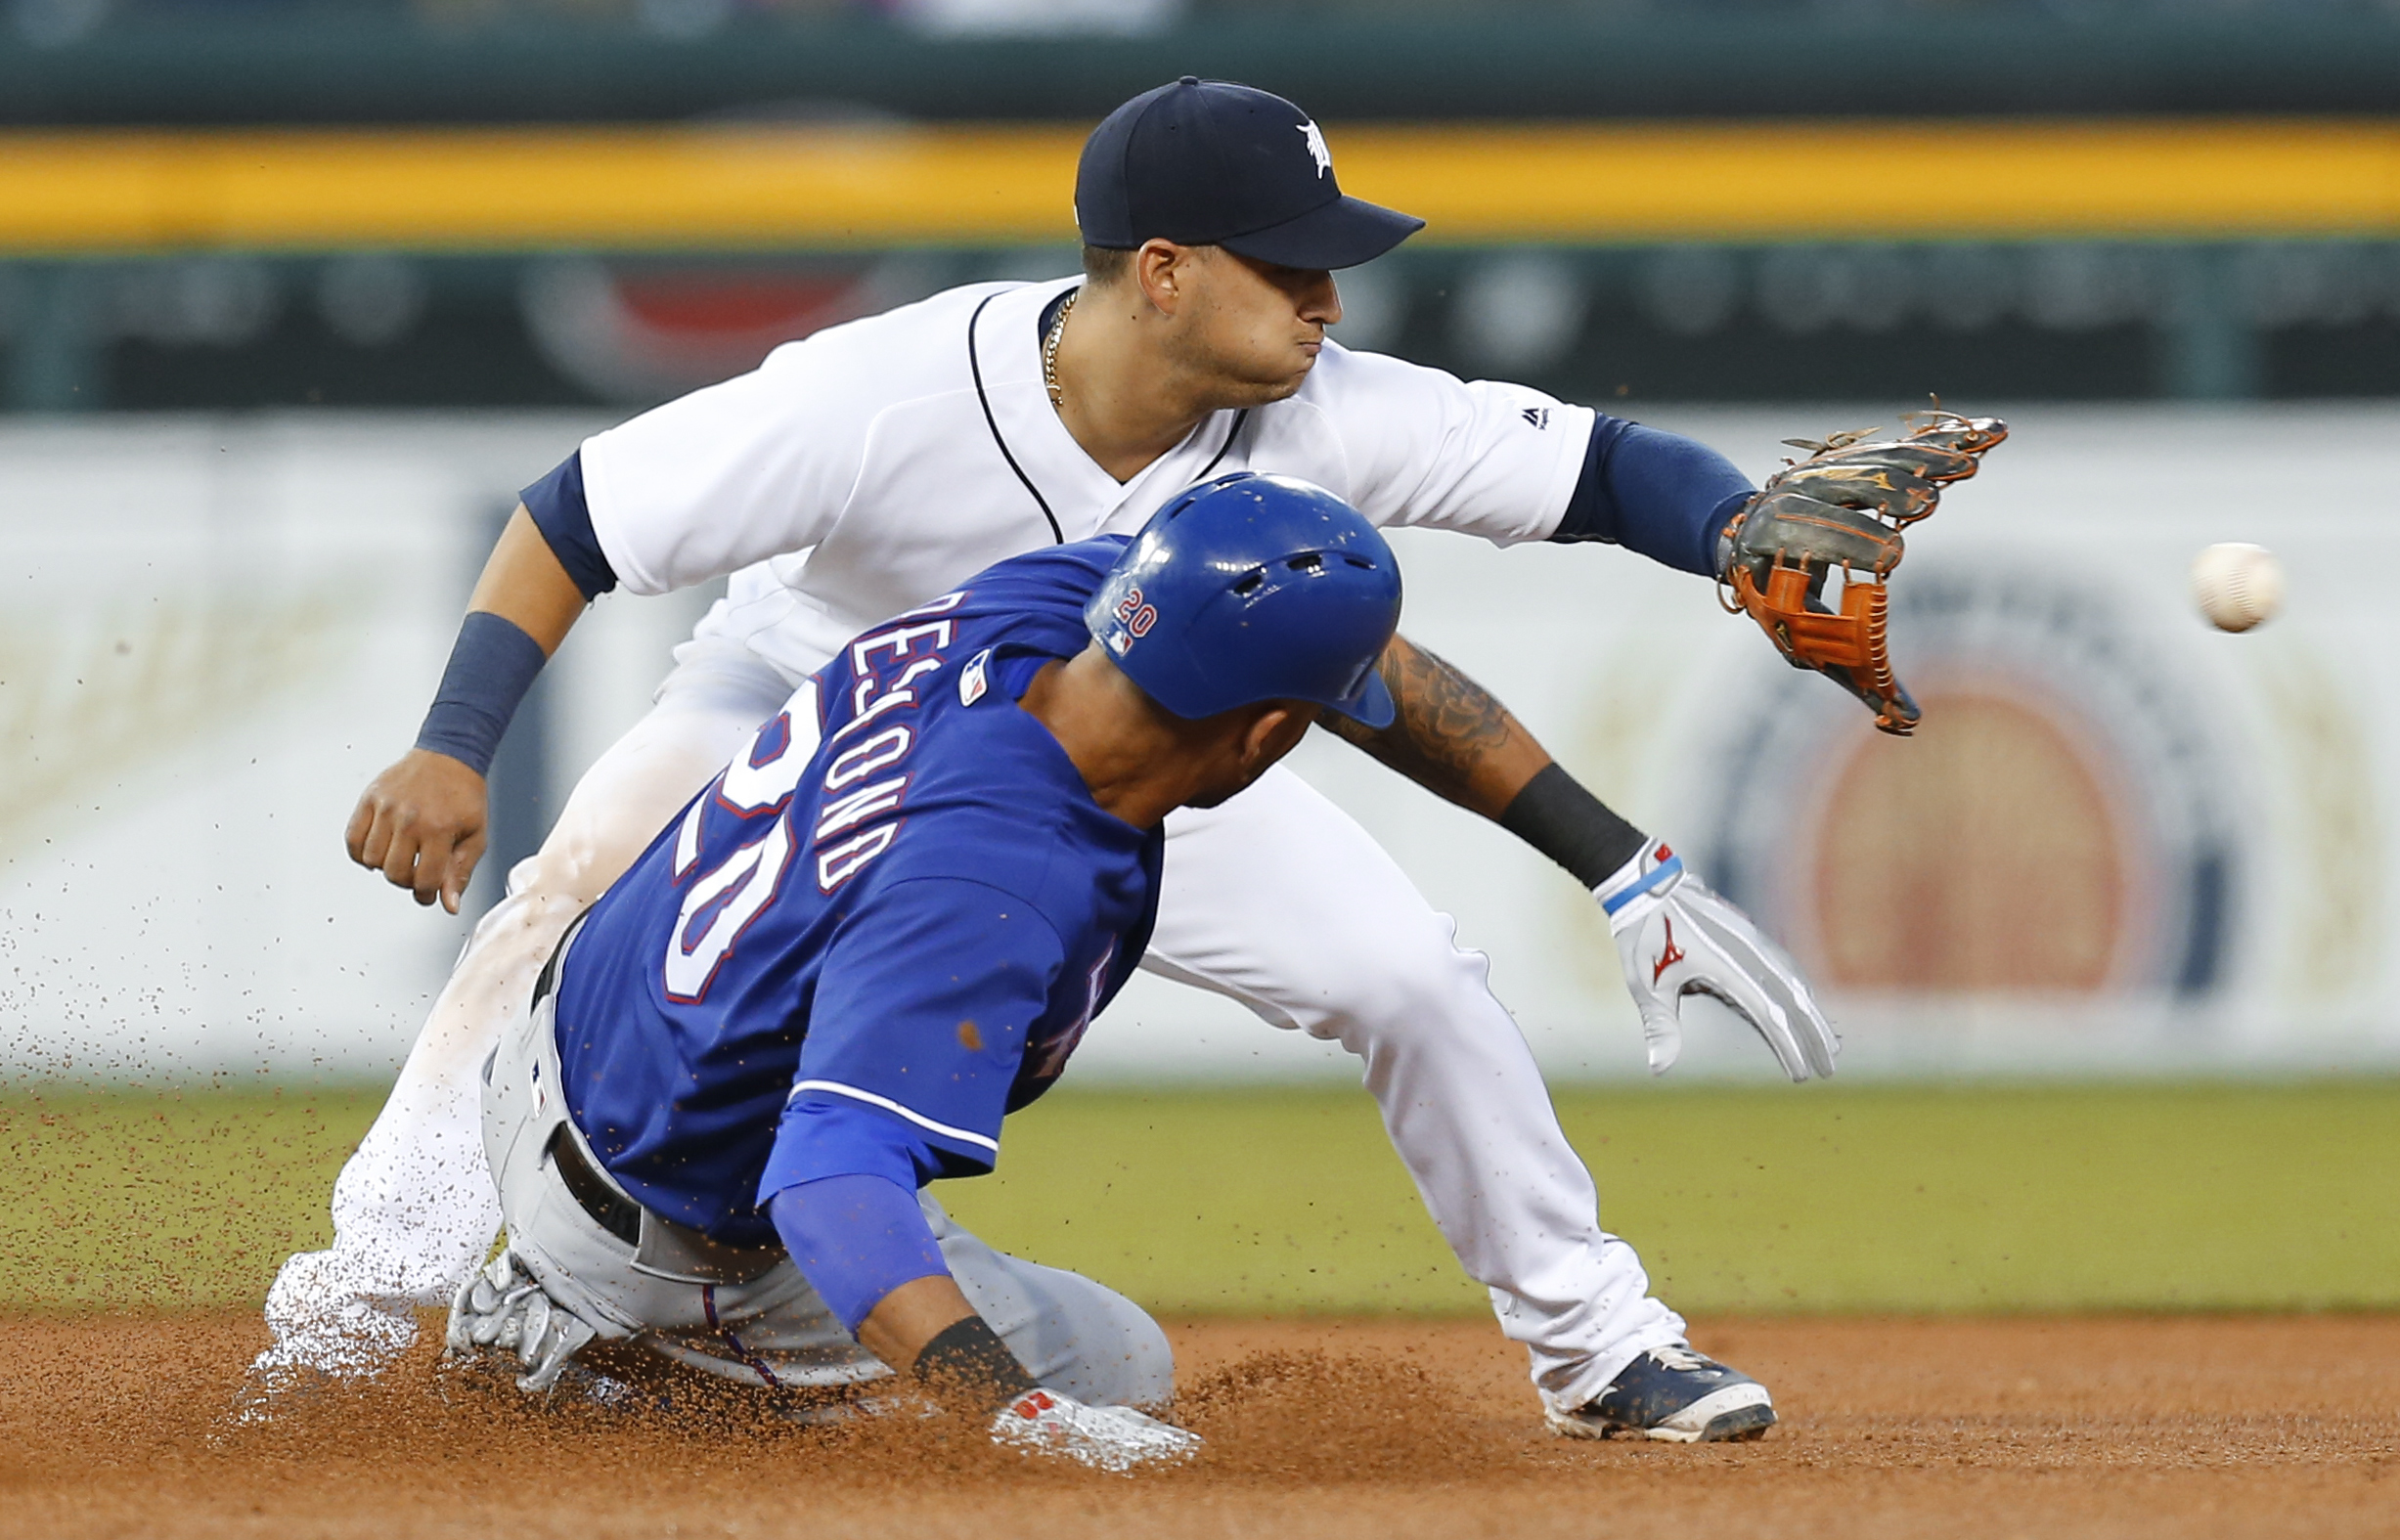 Texas Rangers' Ian Desmond (20) slides into second base safely for a double under the tag of Detroit Tigers shortstop Jose Iglesias in the sixth inning of a baseball game Friday, May 6, 2016 in Detroit. (AP Photo/Paul Sancya)